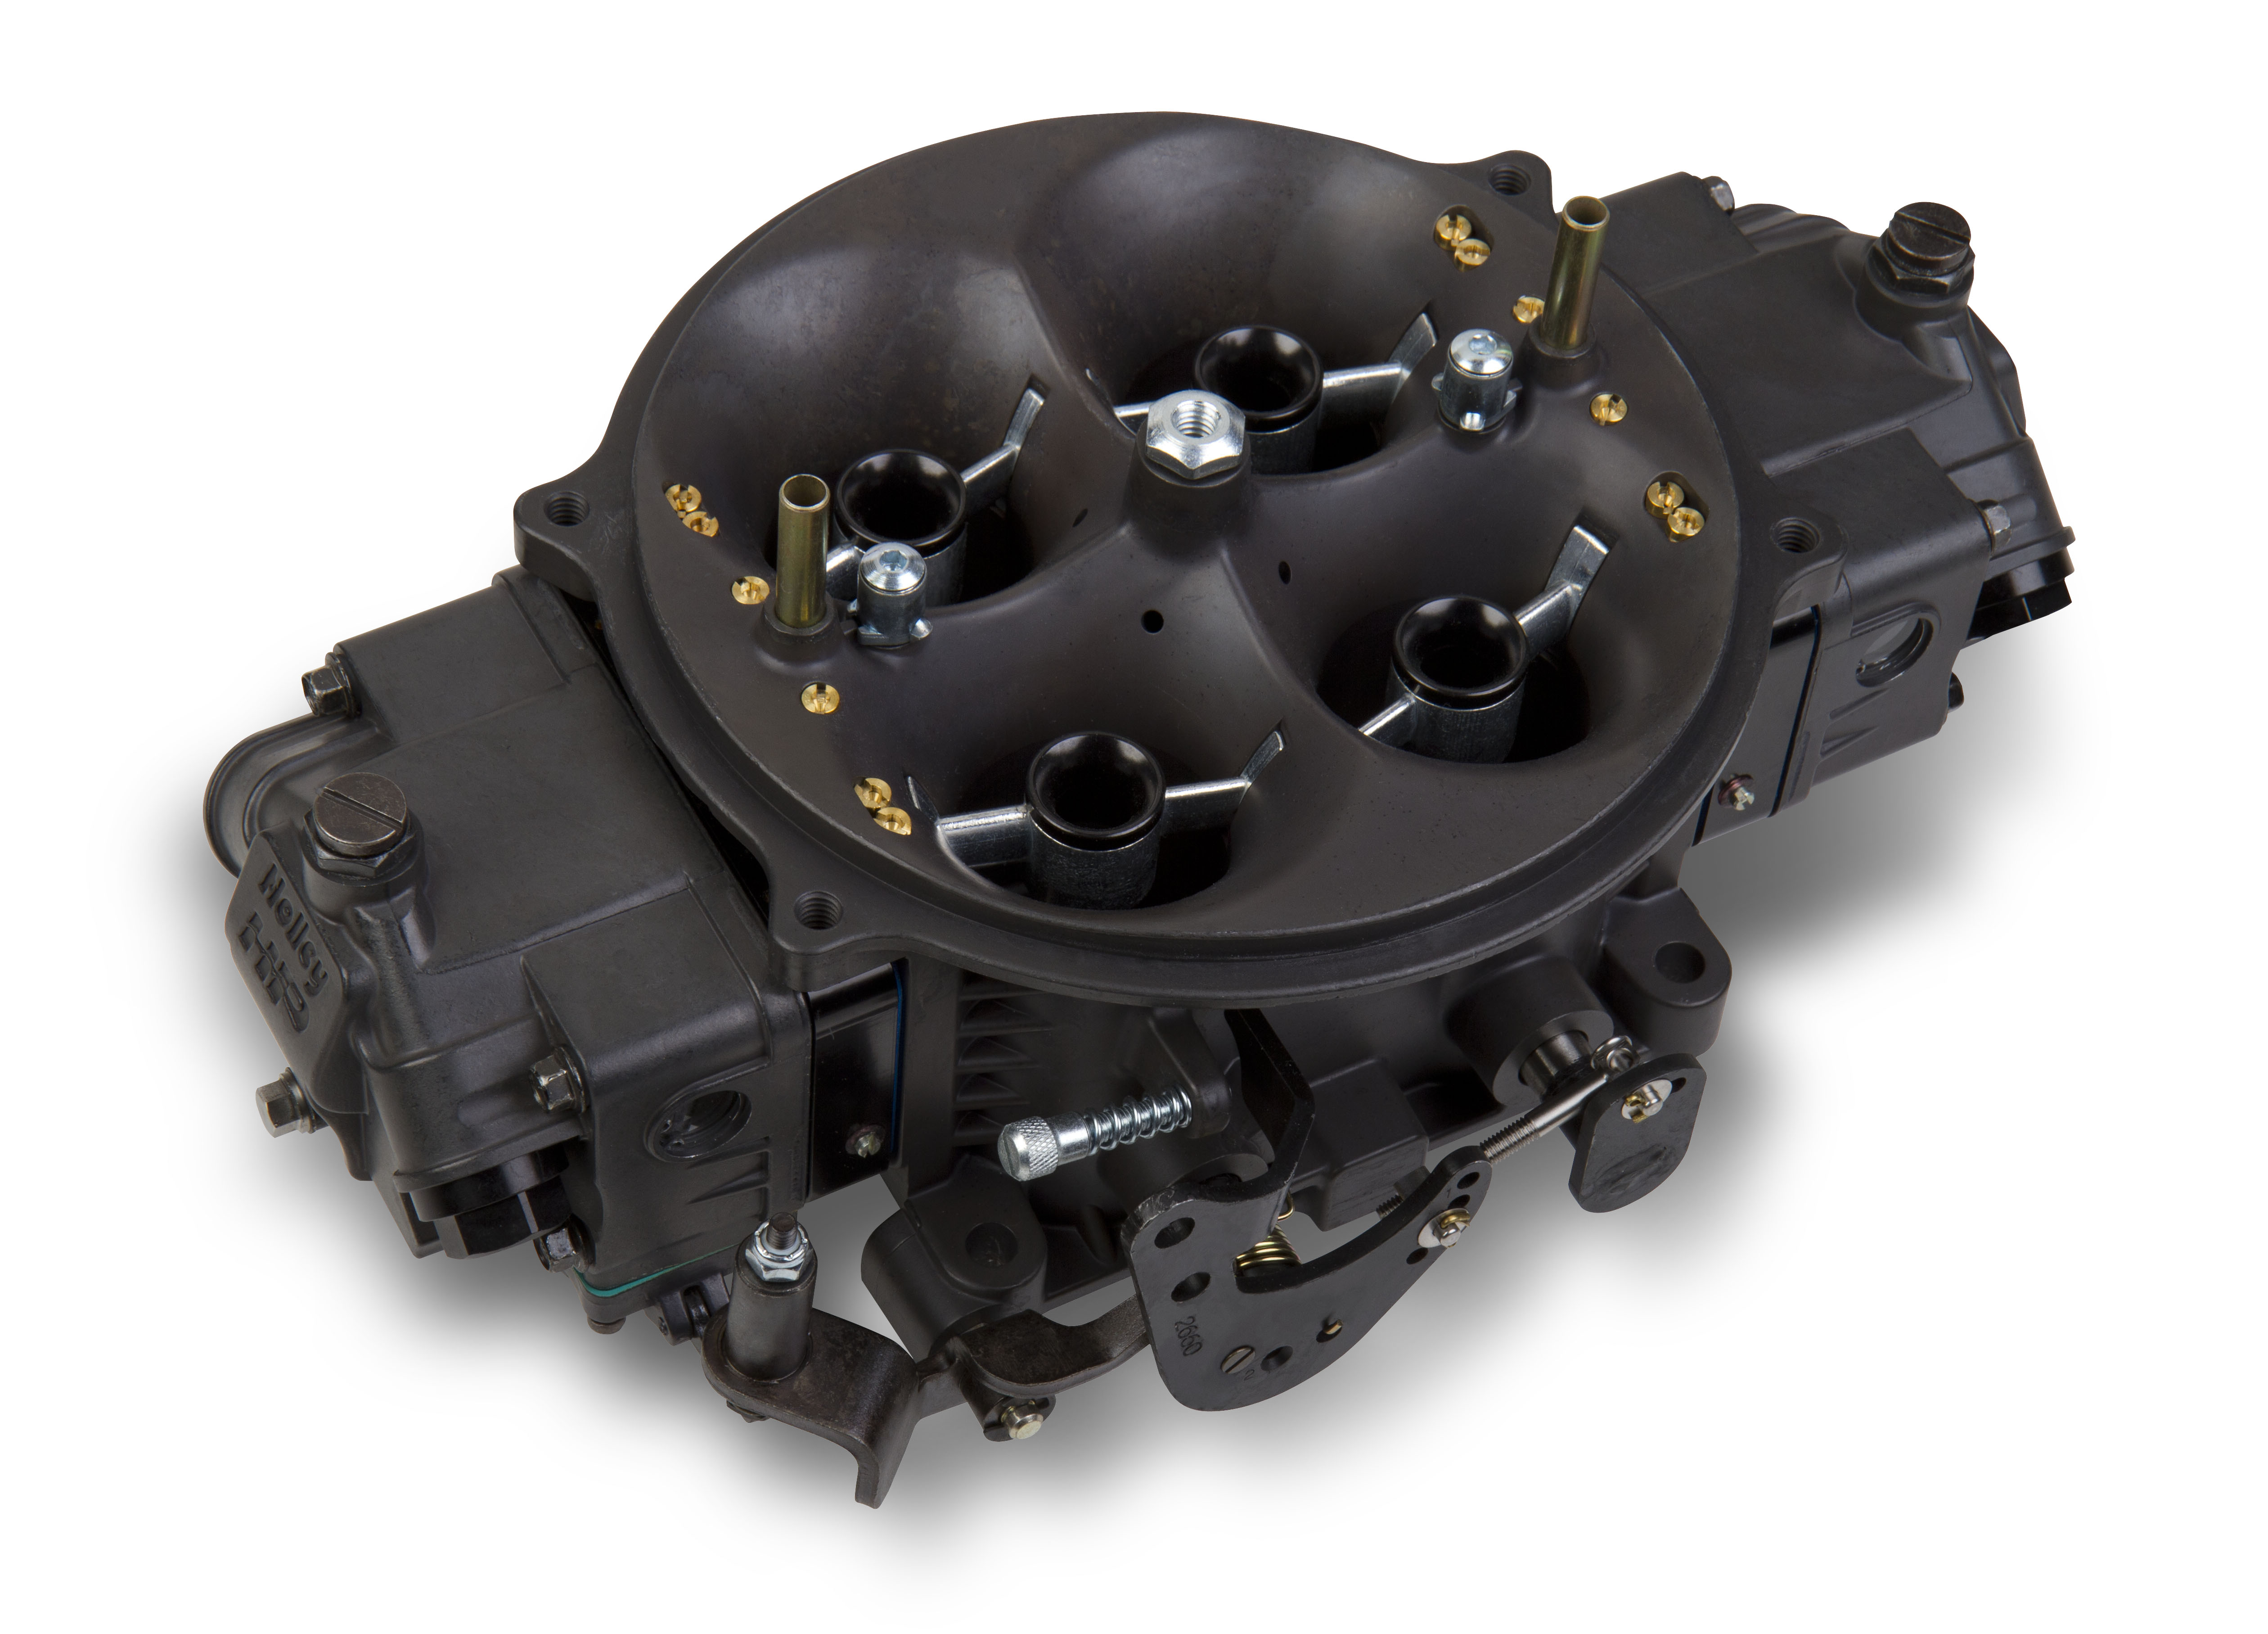 Holley's New Gen 3 Ultra Dominator: Without Question The Sexiest Carburetor Ever